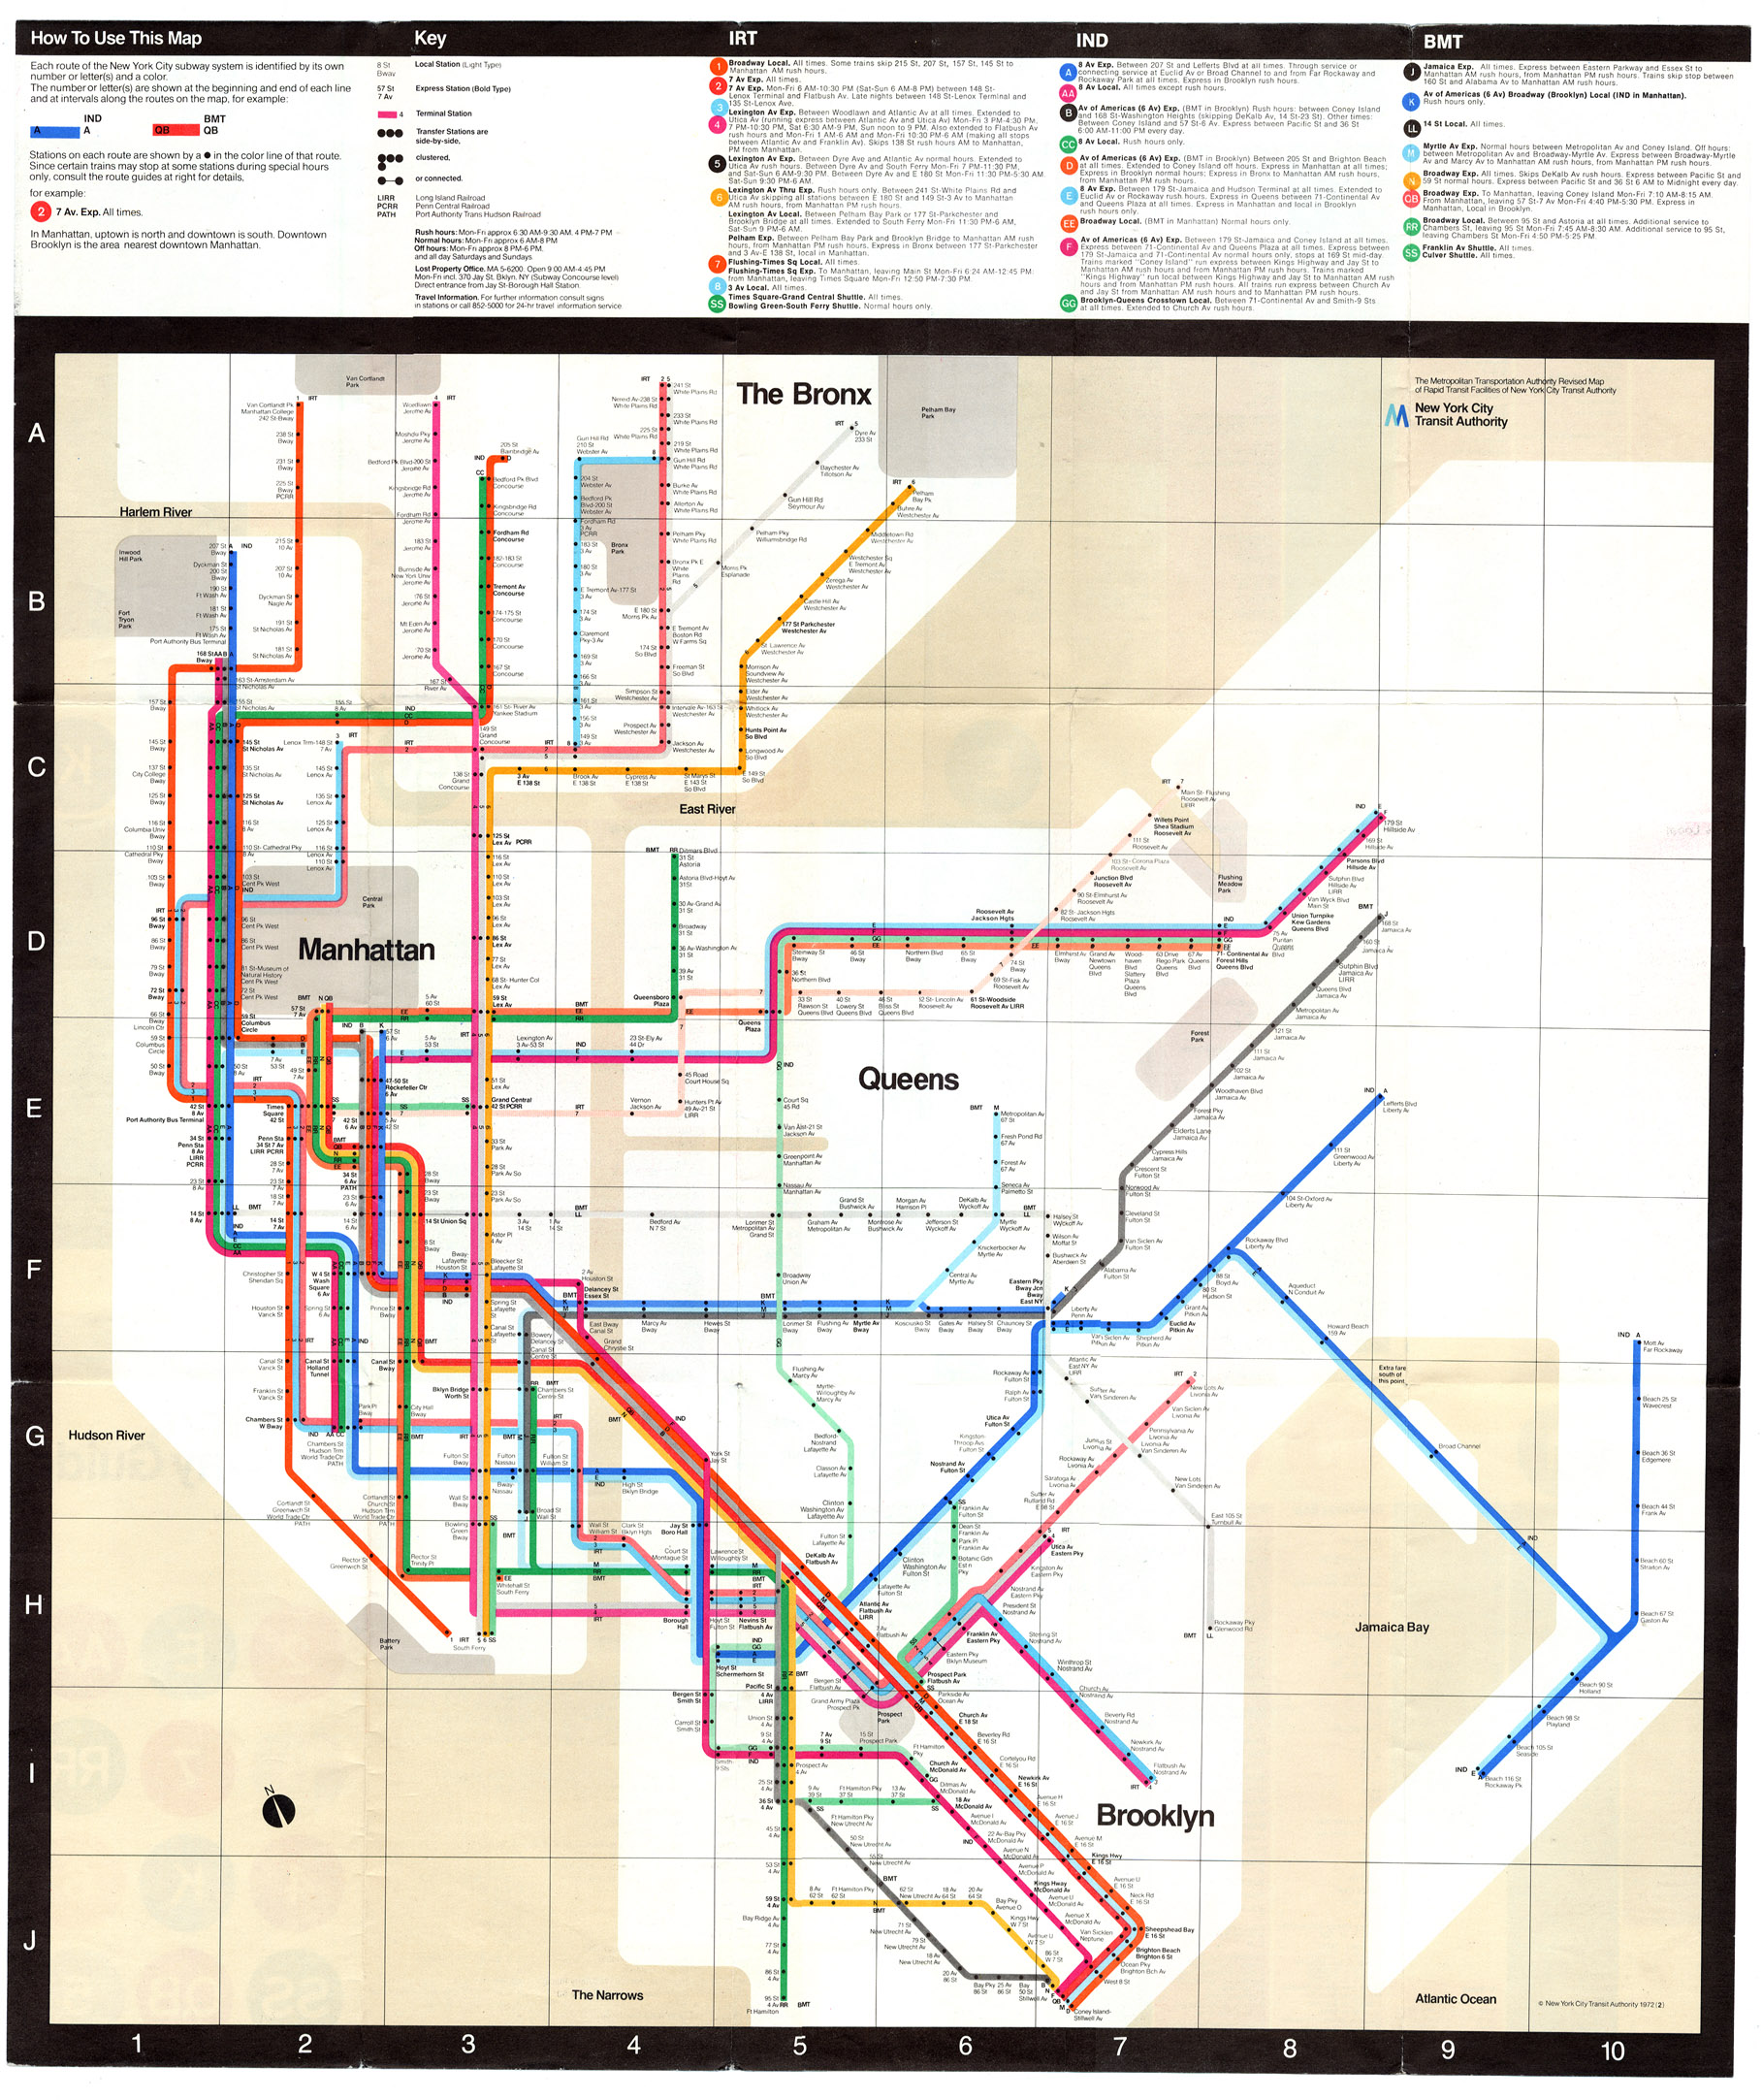 Nyc Subway Map Jpeg.Www Nycsubway Org